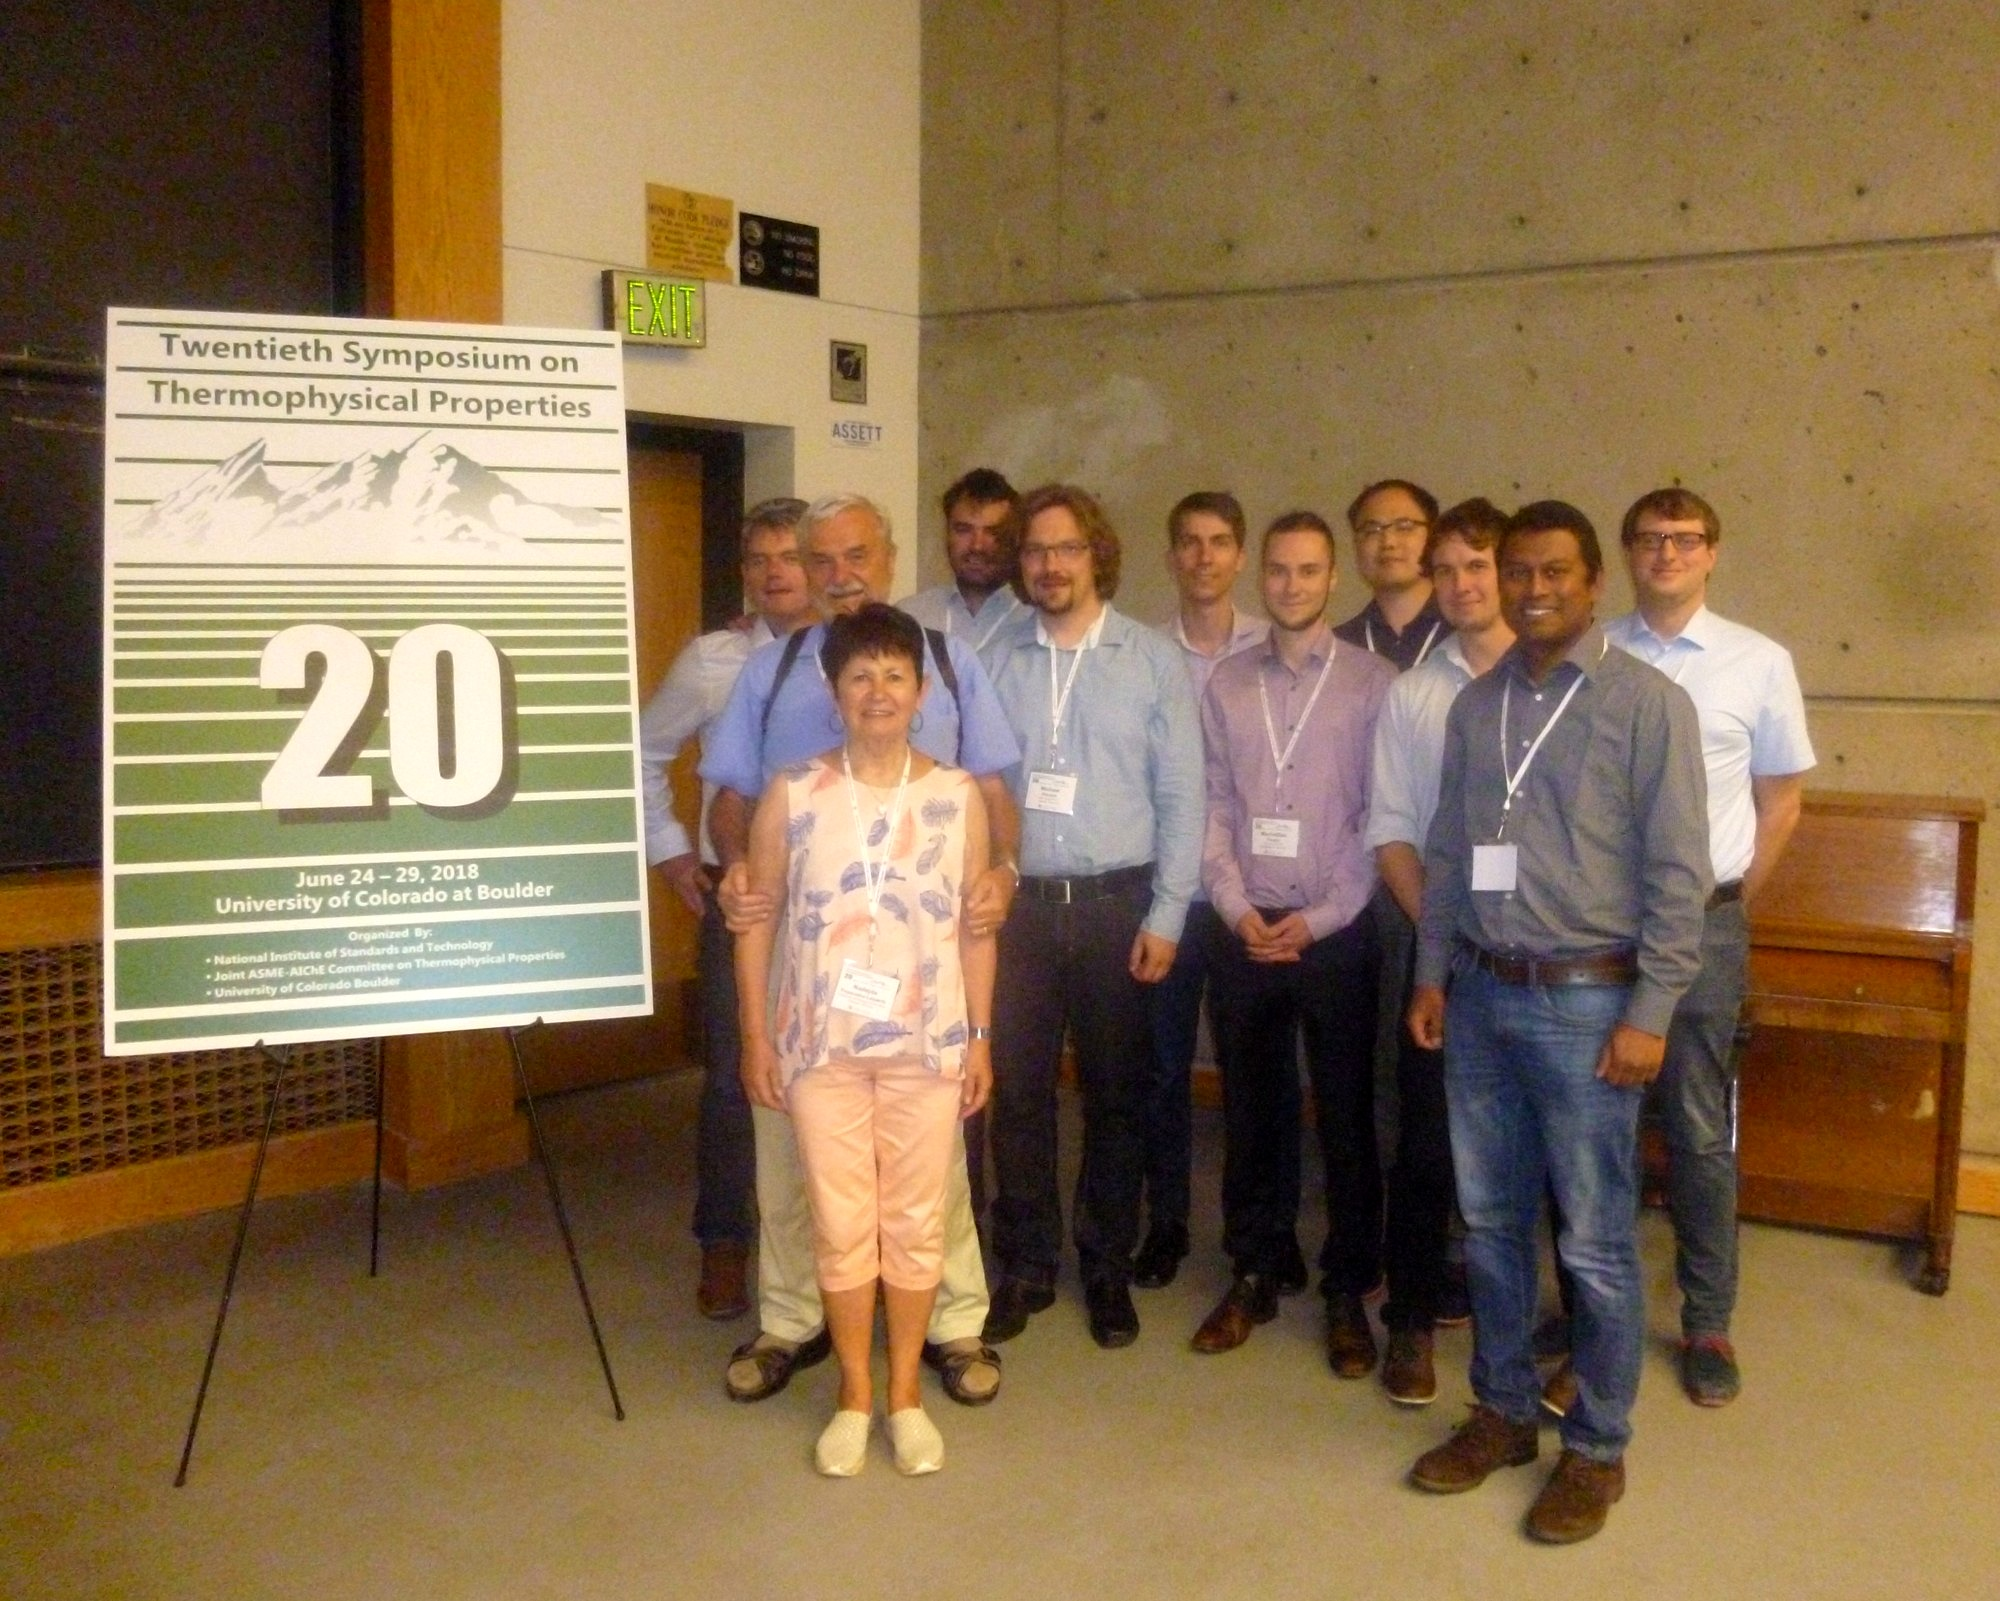 Group photo at the 20th Symposium on Thermophysical Properties in Boulder, CO including the Touloukian Awardee Alfred Leipertz and Nadejda Popovska-Leipertz